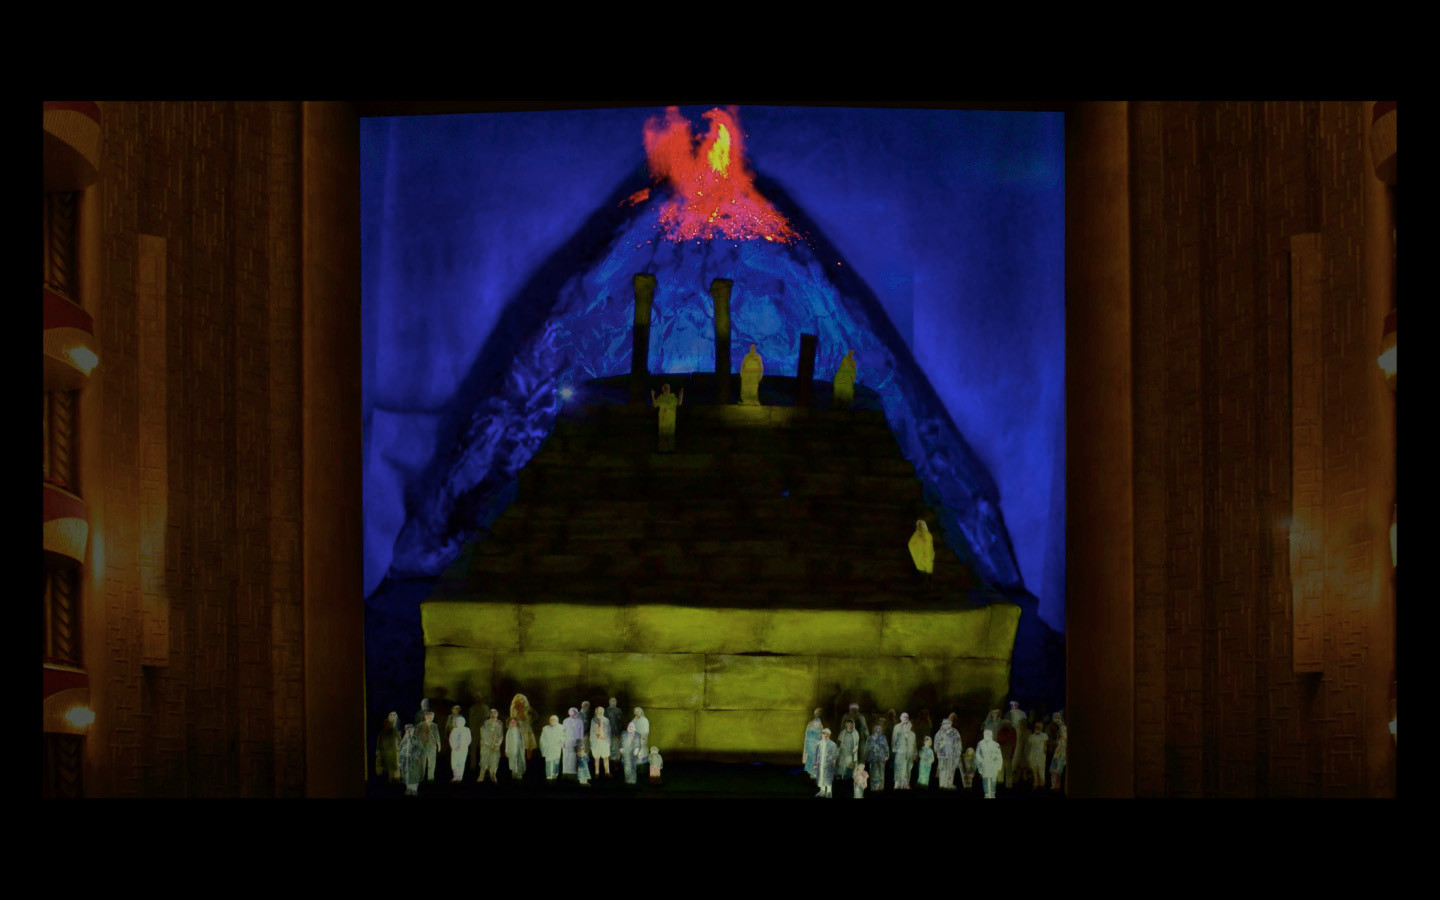 The assassin of the king is a king. Act I ends with the eruption of the volcano.